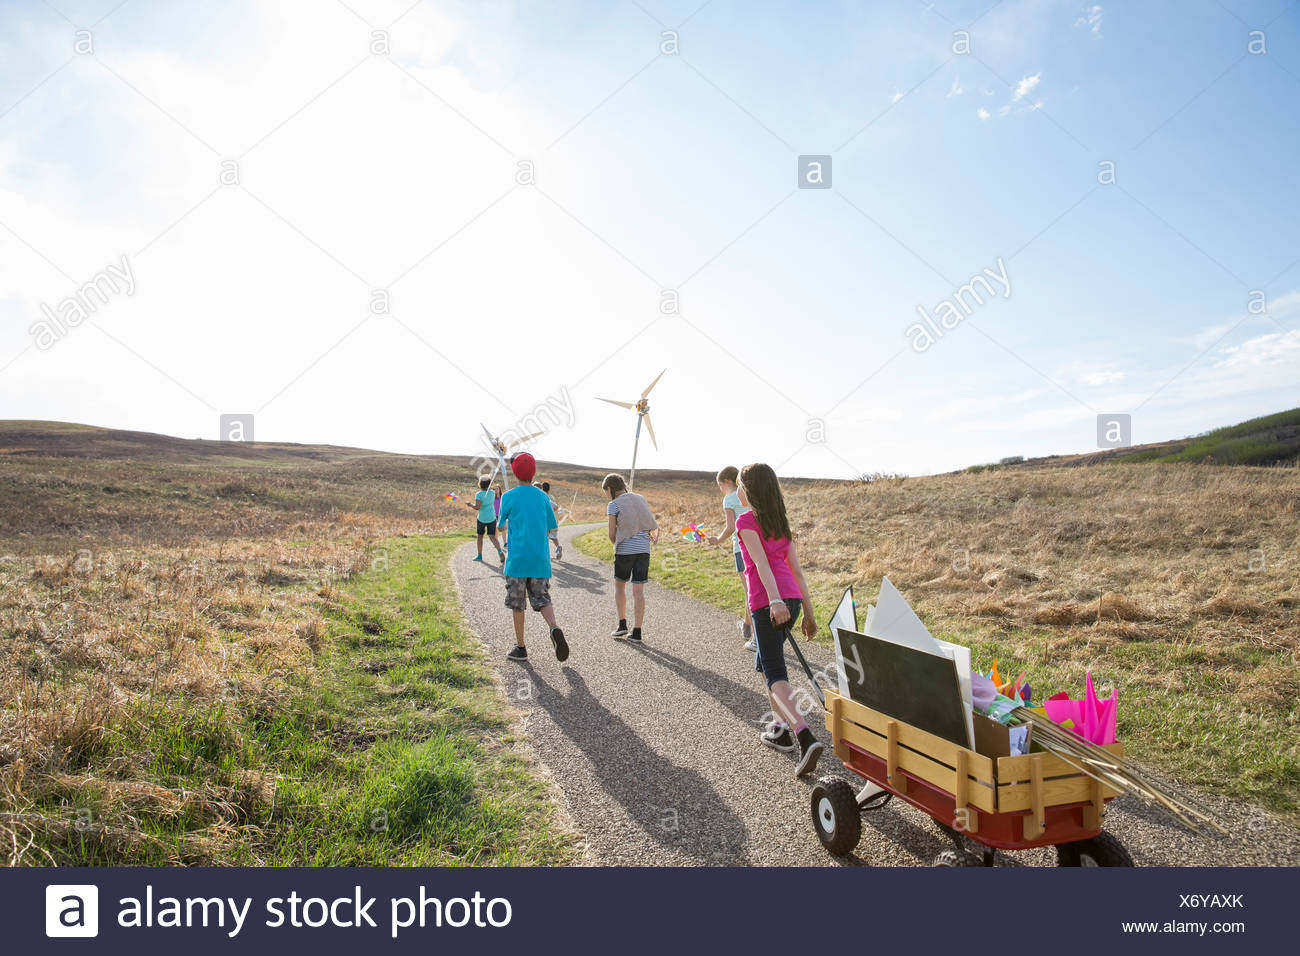 Children walking on path with wind turbines - Stock Image